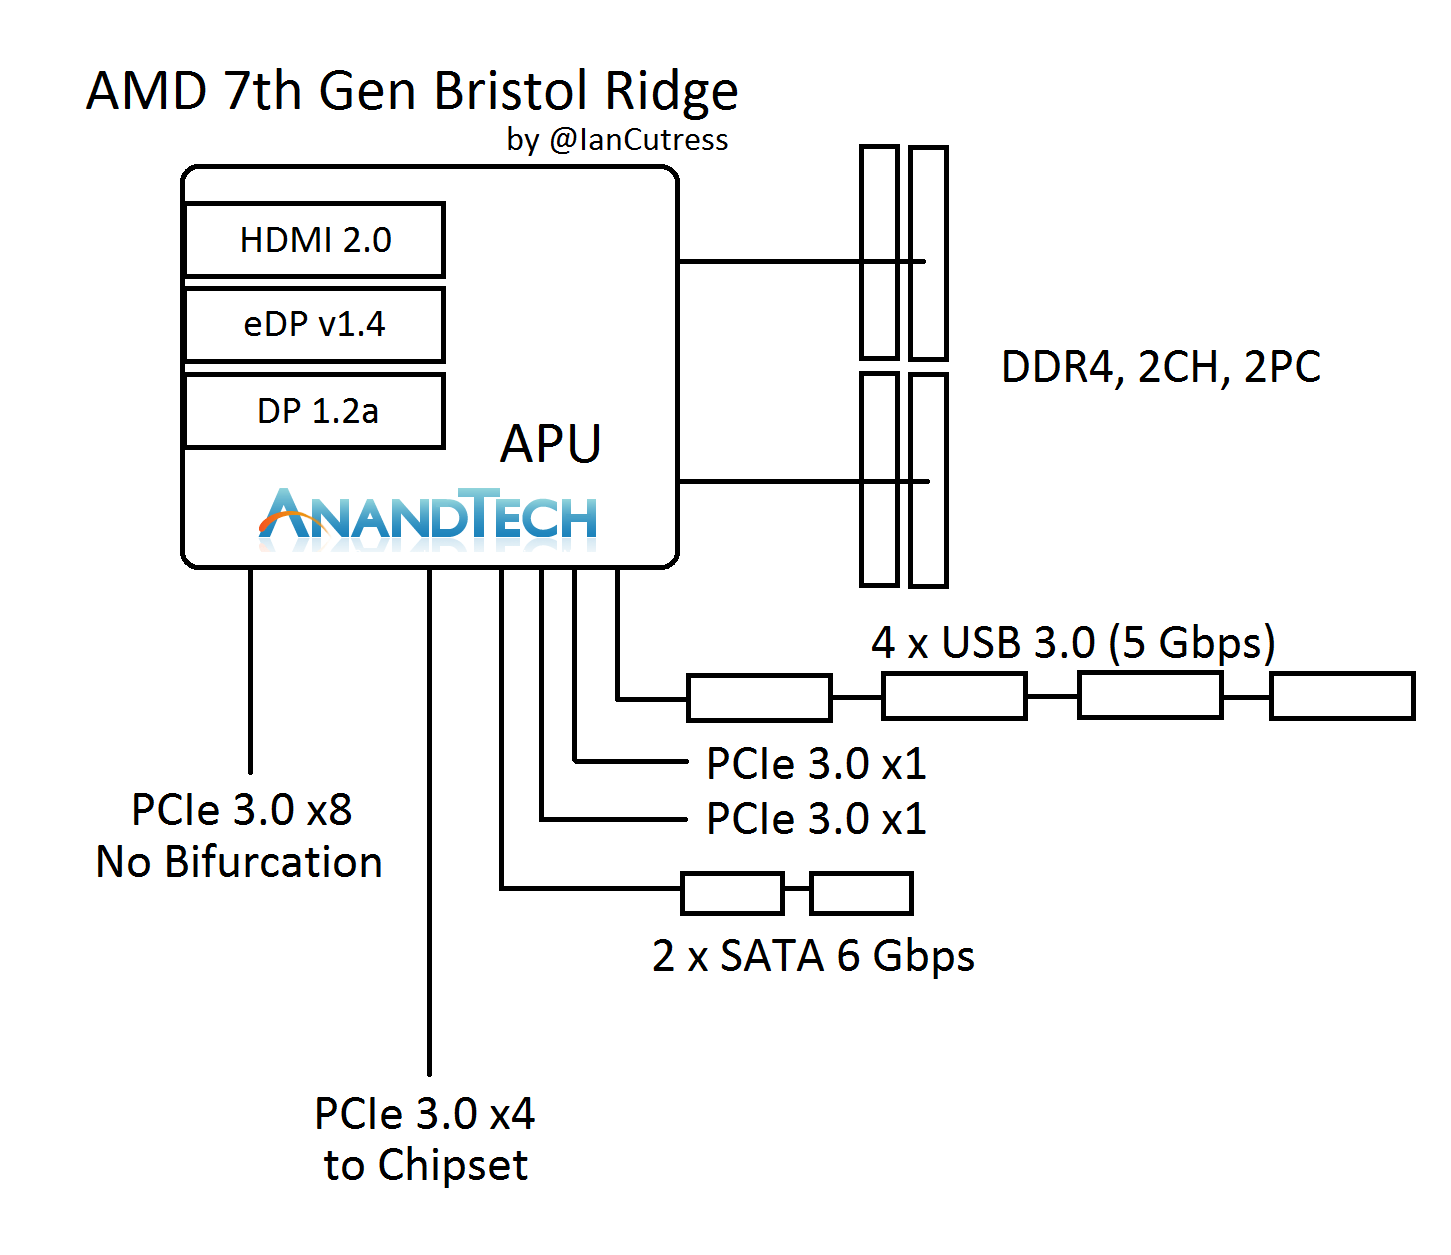 hight resolution of amd 7th gen bristol ridge and am4 analysis up to a12